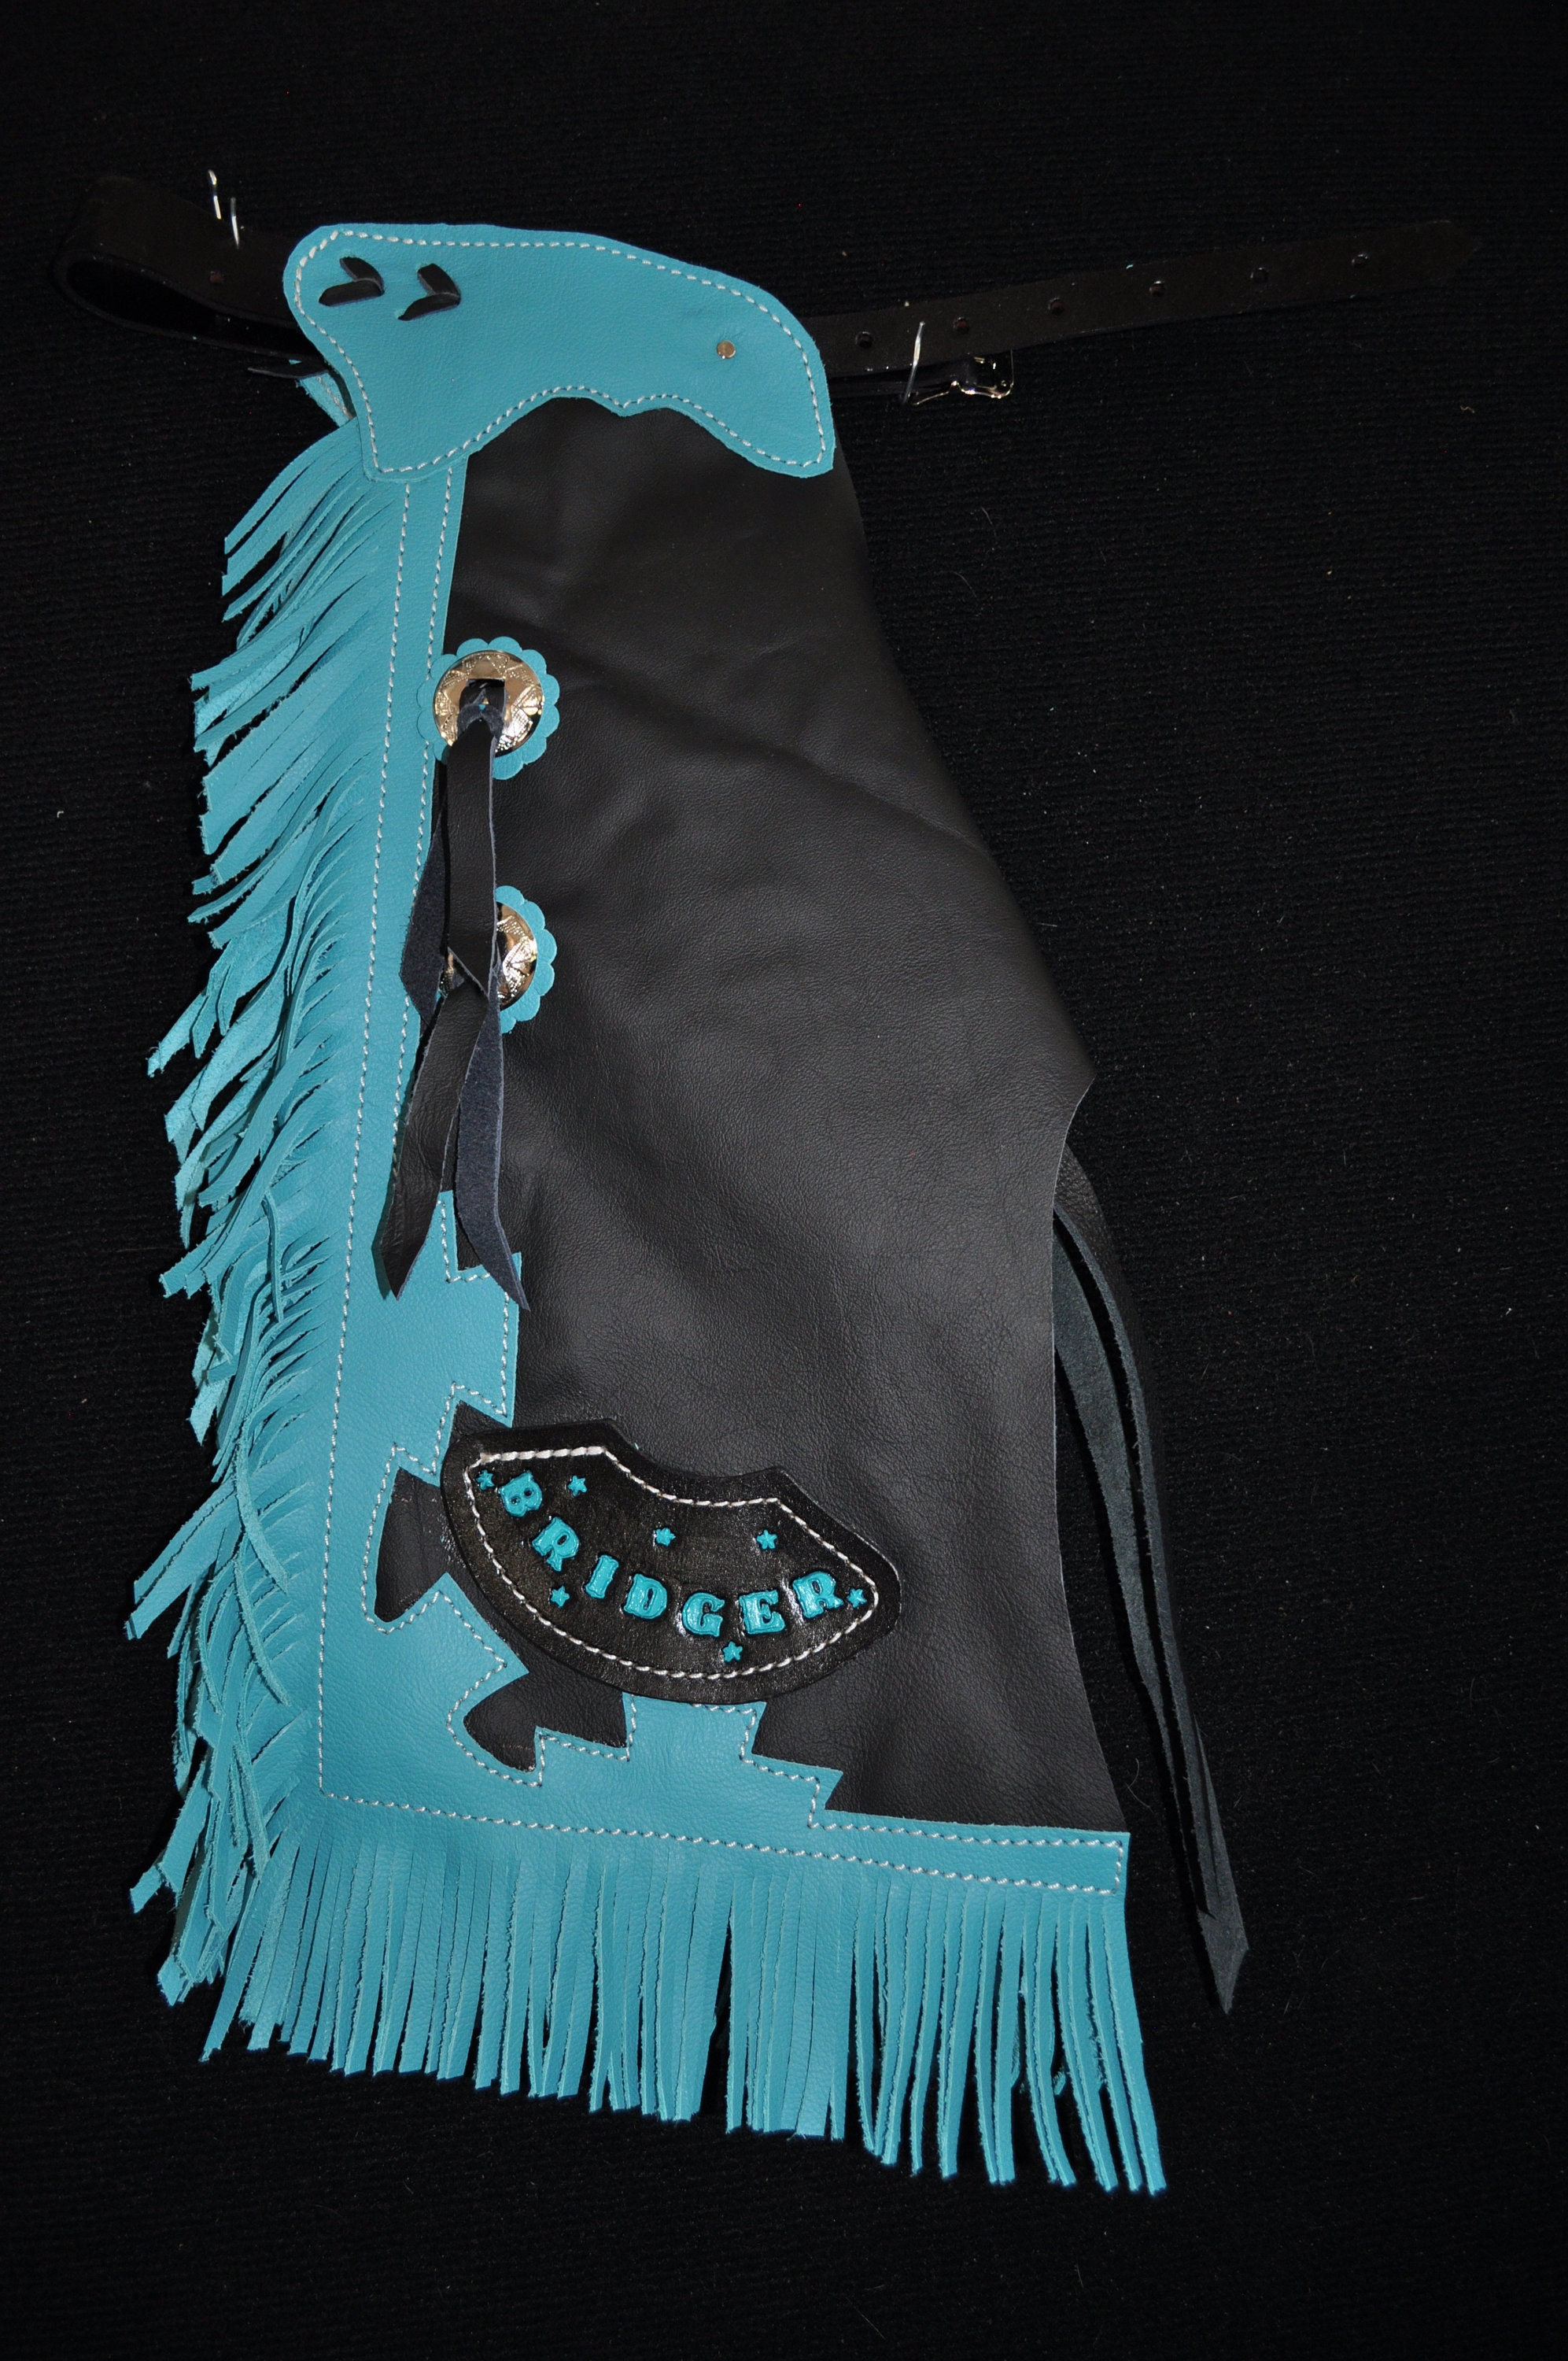 Custom Made Kid's Bronc/Bull Riding Chaps/ New/ Custom Leather/ Rodeo Chaps/R Bar K/Personalized